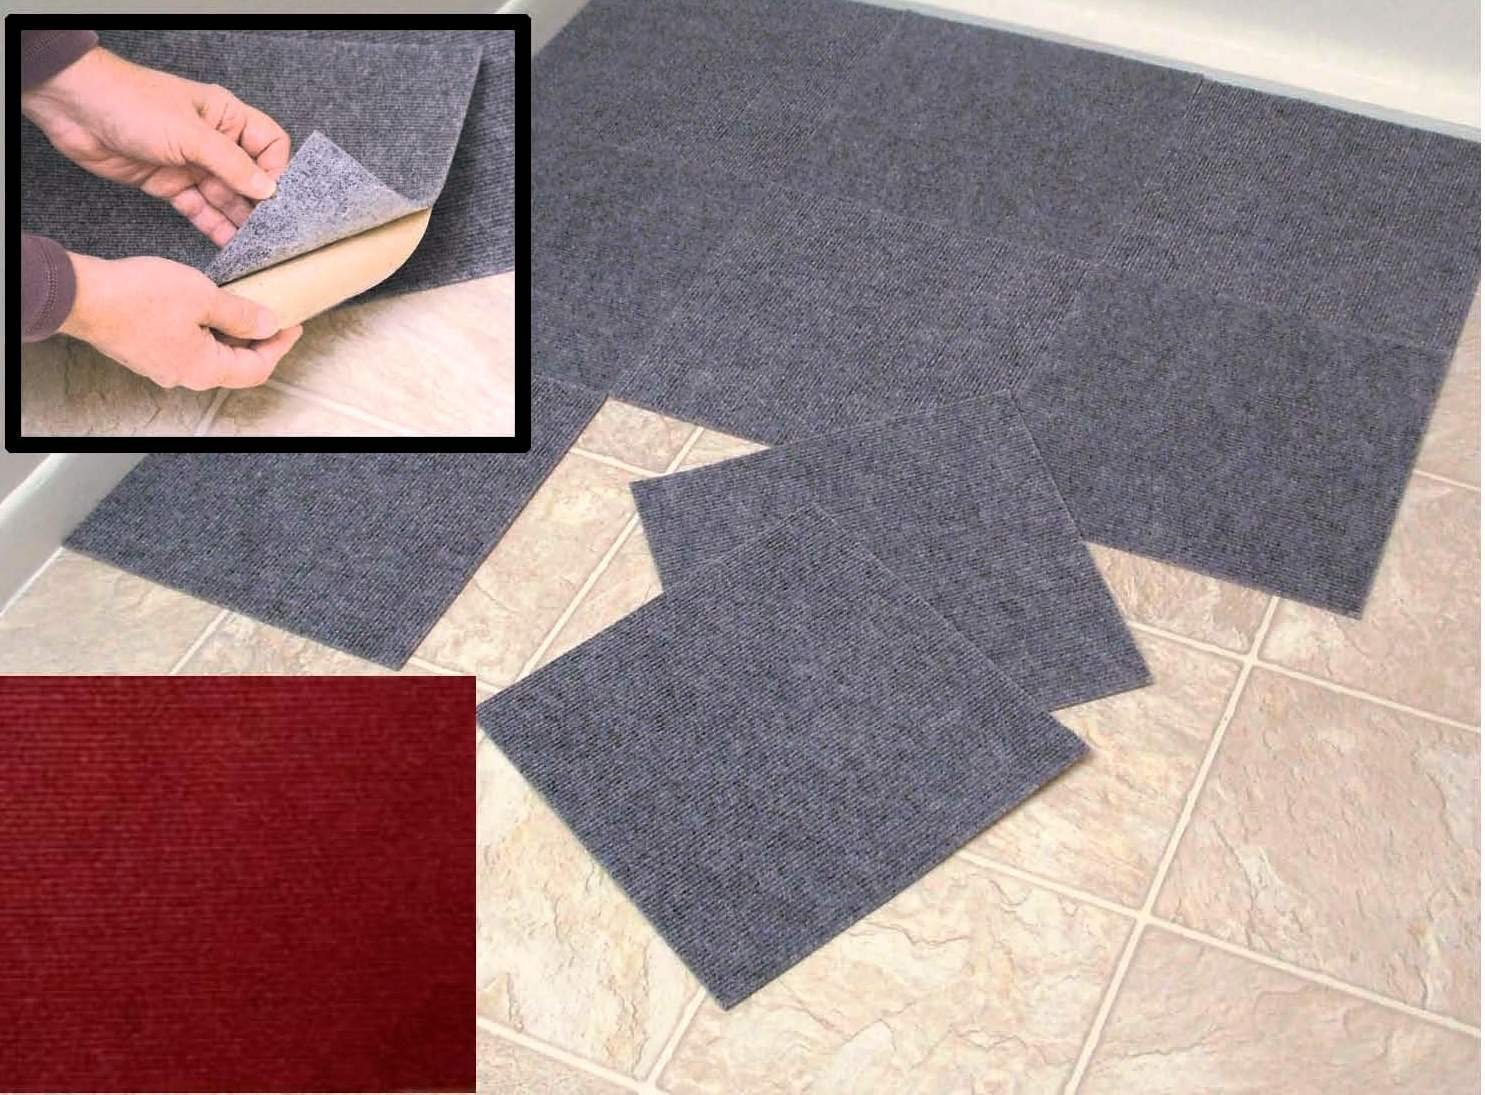 Amazon peel stick berber carpet tiles set of 10 gray by amazon peel stick berber carpet tiles set of 10 gray by jumbl kitchen dining baanklon Images